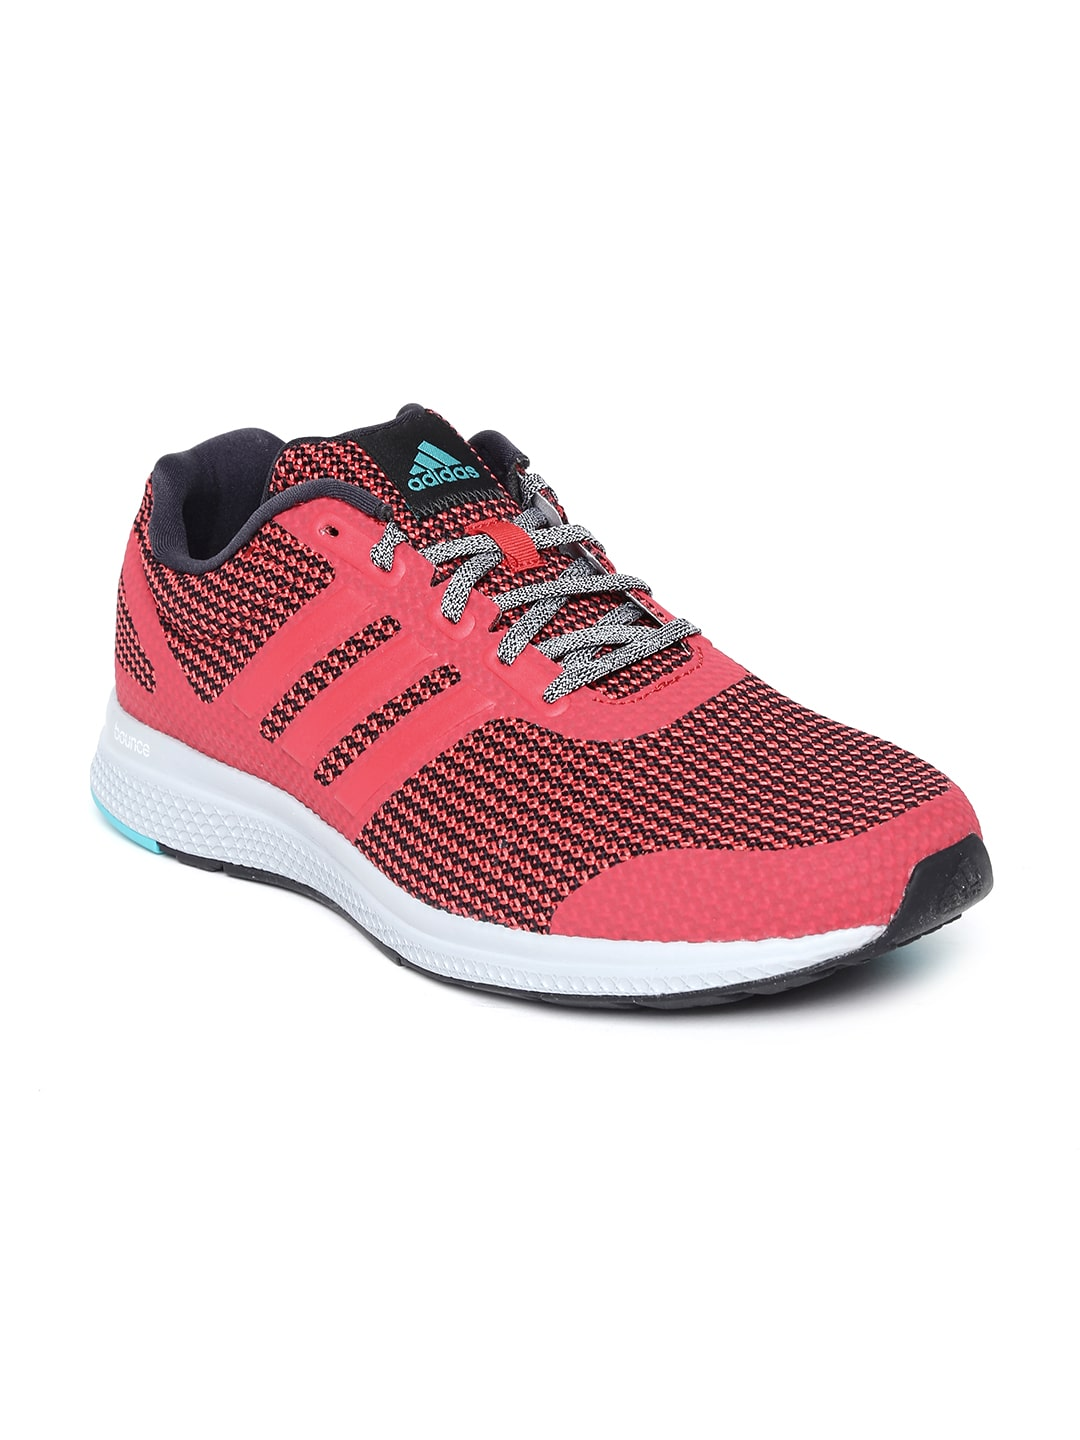 Adidas af4113 Mens Running Mana Bounce Shoes - Best Price in ... c2f4d4ea8